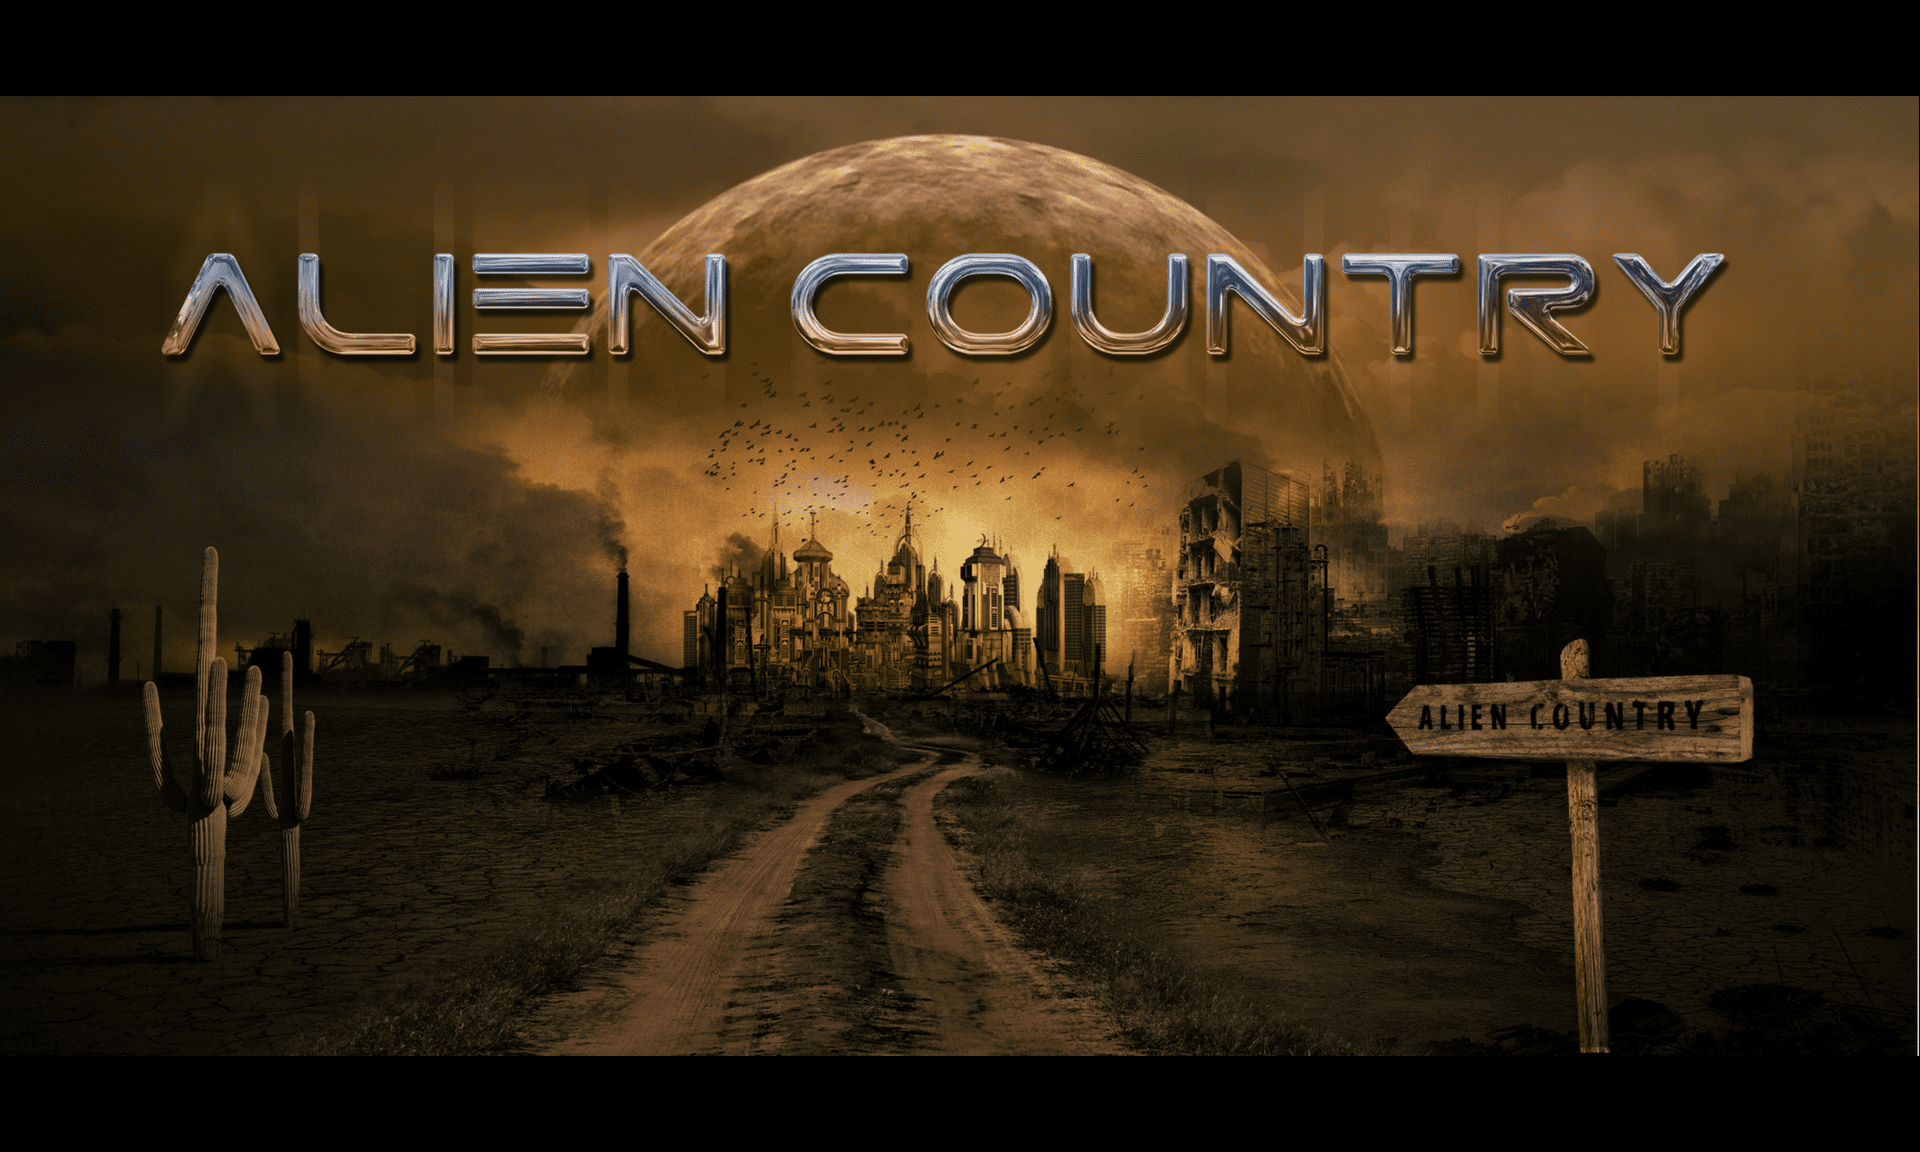 Alien Country Music Poster by Hugh Syme